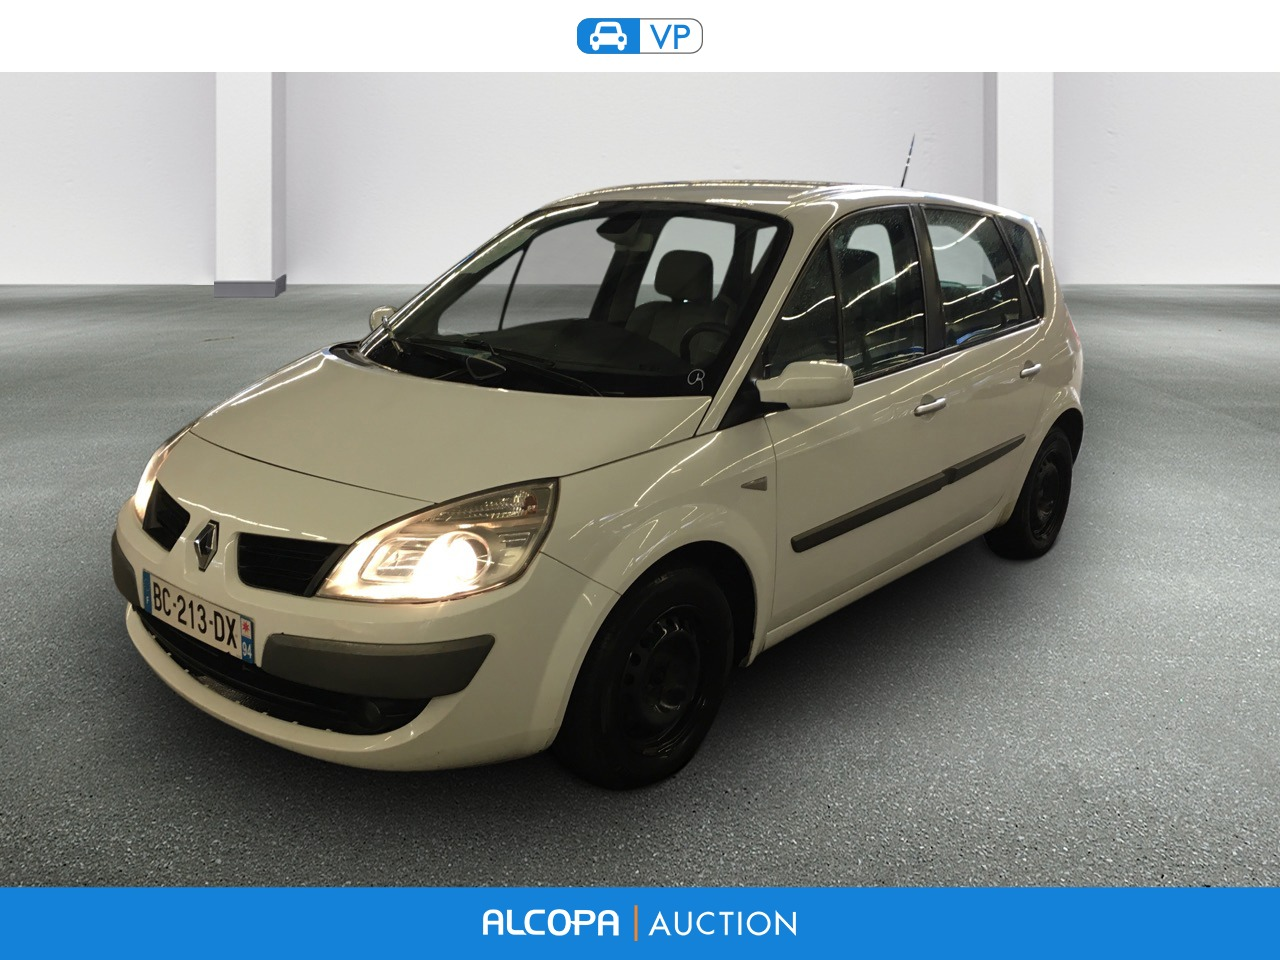 renault scenic ii scenic 1 5 dci 105 expression alcopa auction. Black Bedroom Furniture Sets. Home Design Ideas